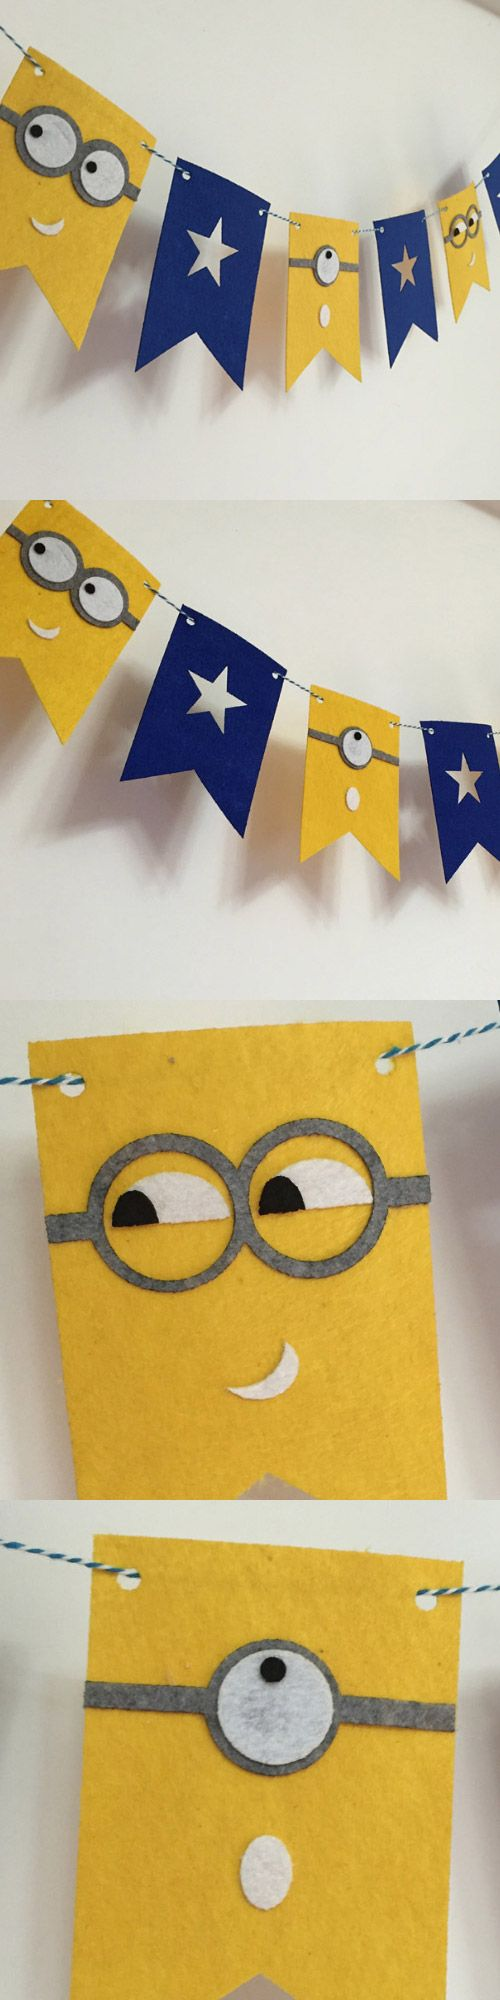 Felt birthday flag minions banner kids Baby Shower Bridal Shower Birthday Party kid room decor Garland